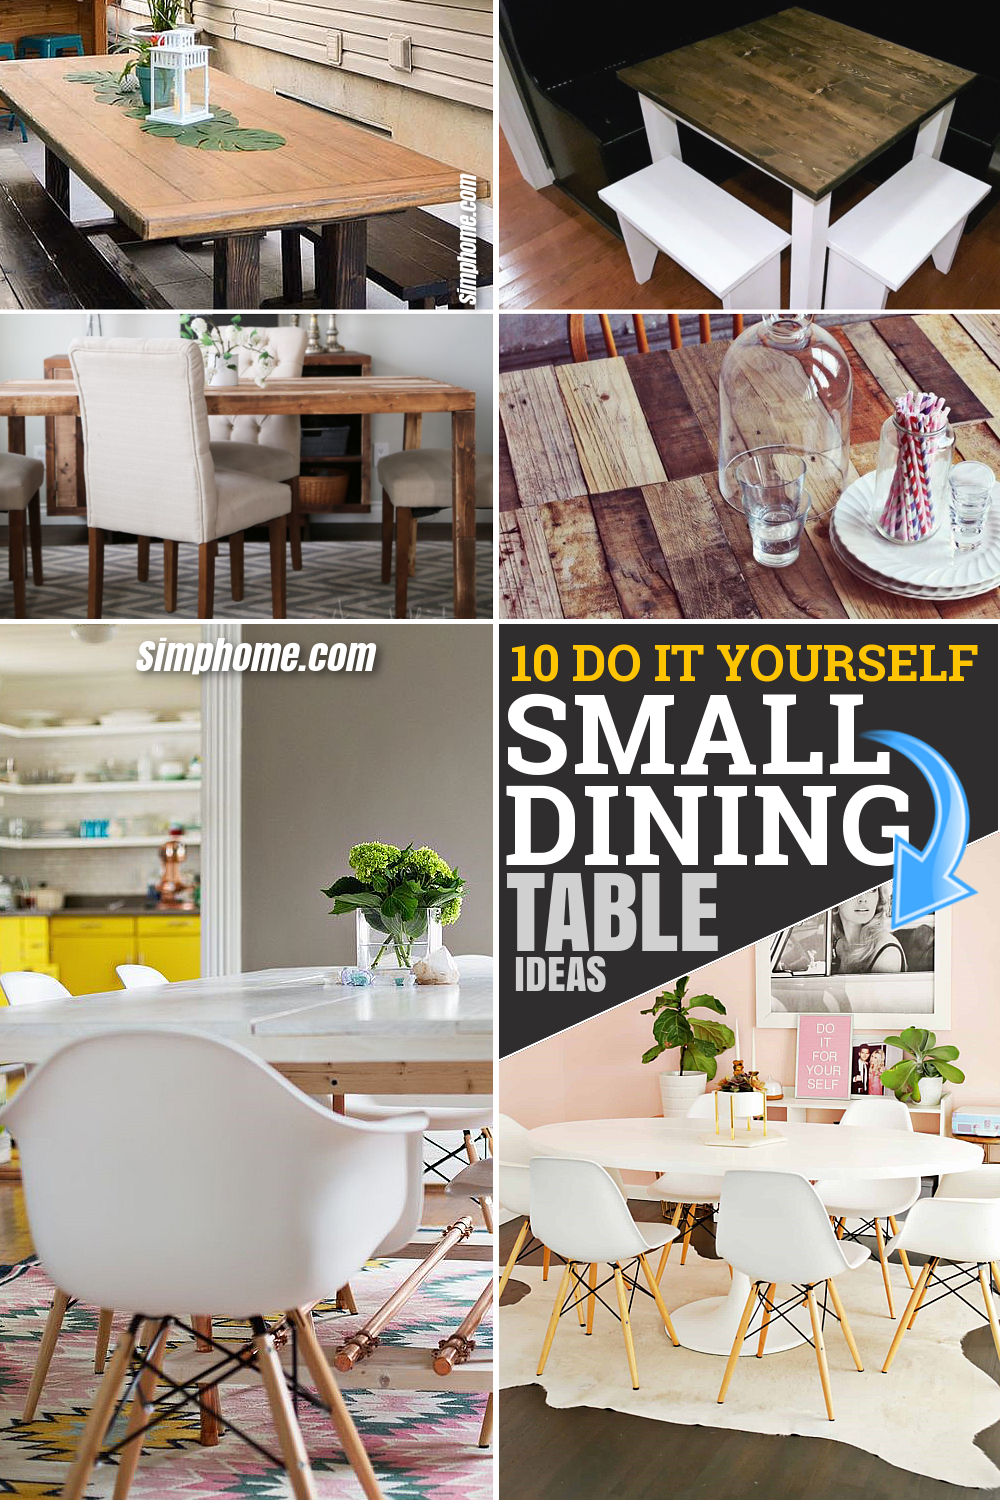 10 Small Dining Table Ideas And Diy Simphome